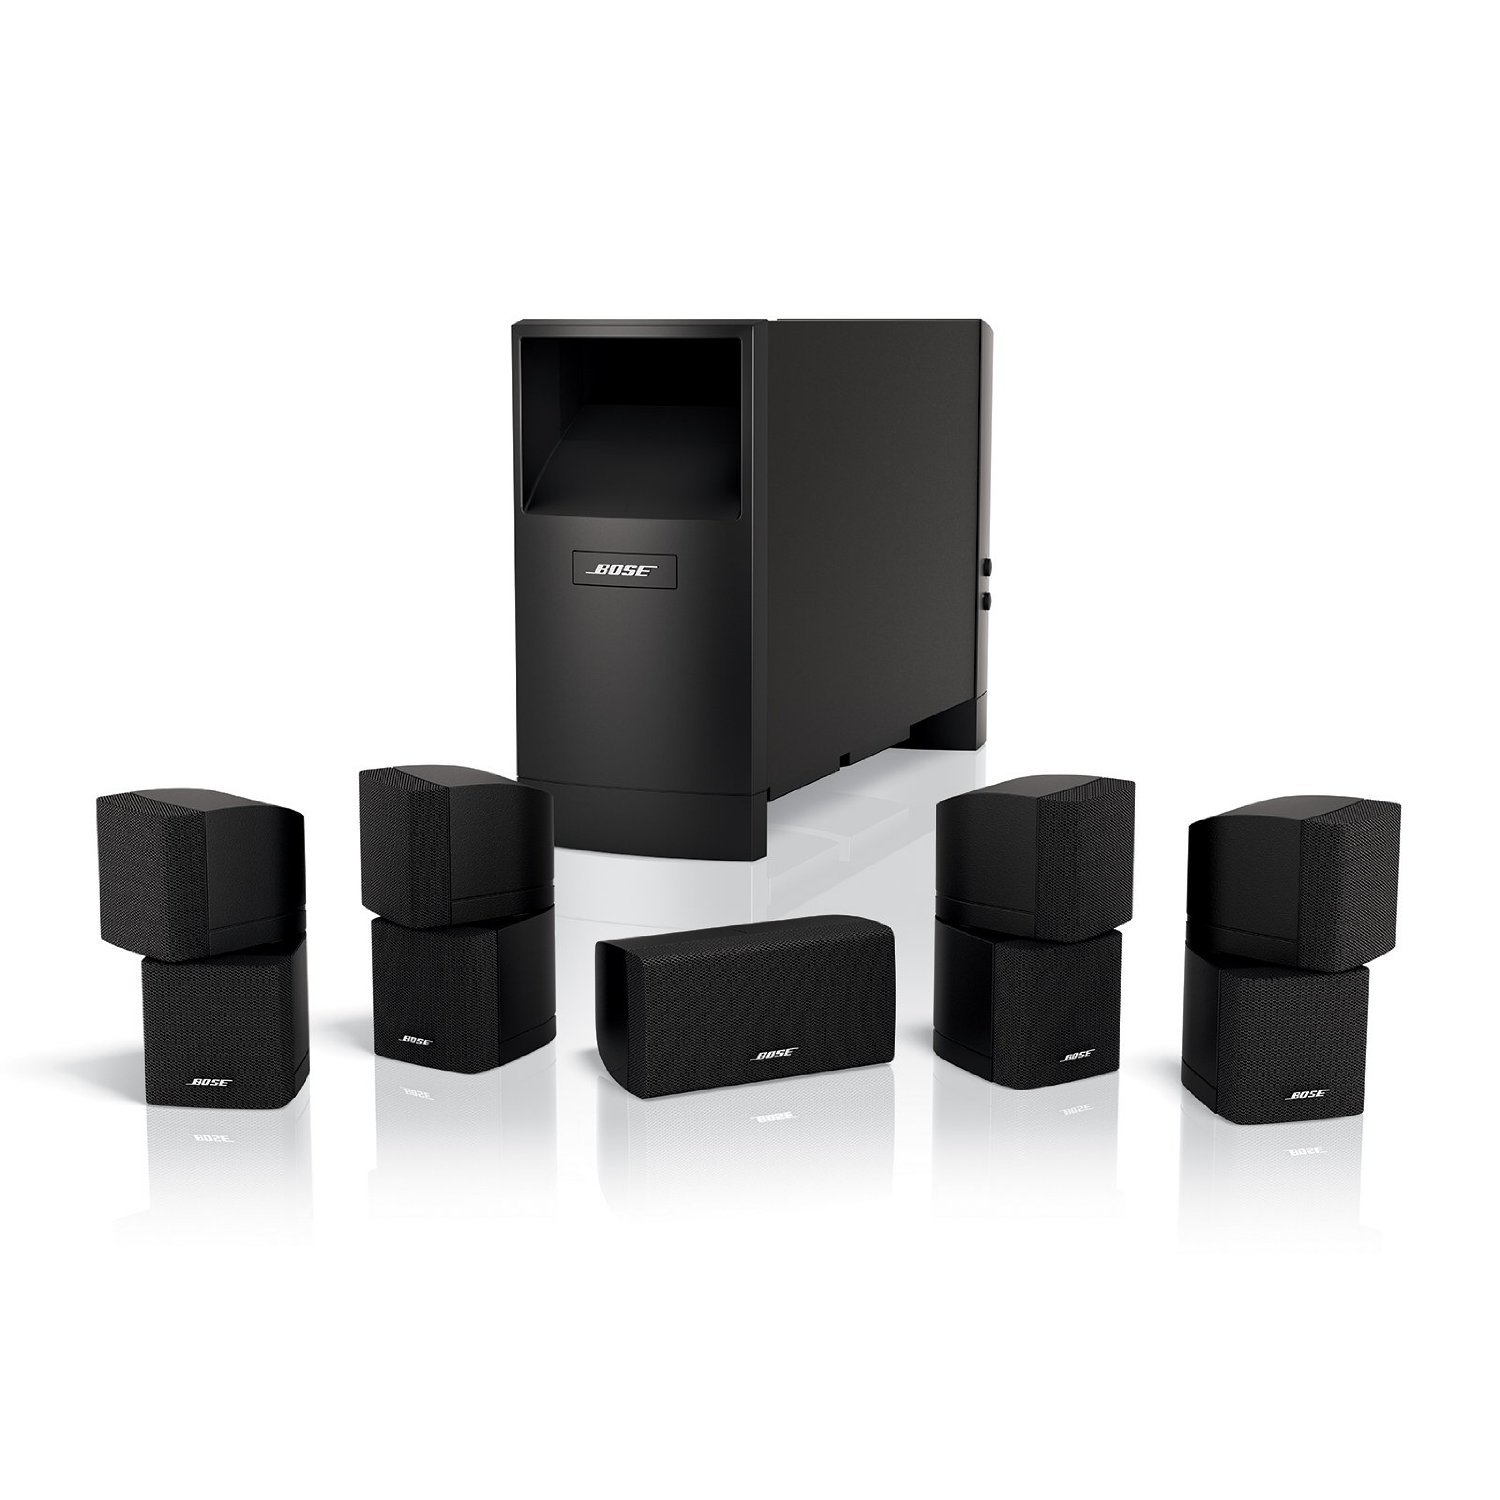 Bose Acoustimass 10 Series IV 5.1 Channel Entertainment Speaker System